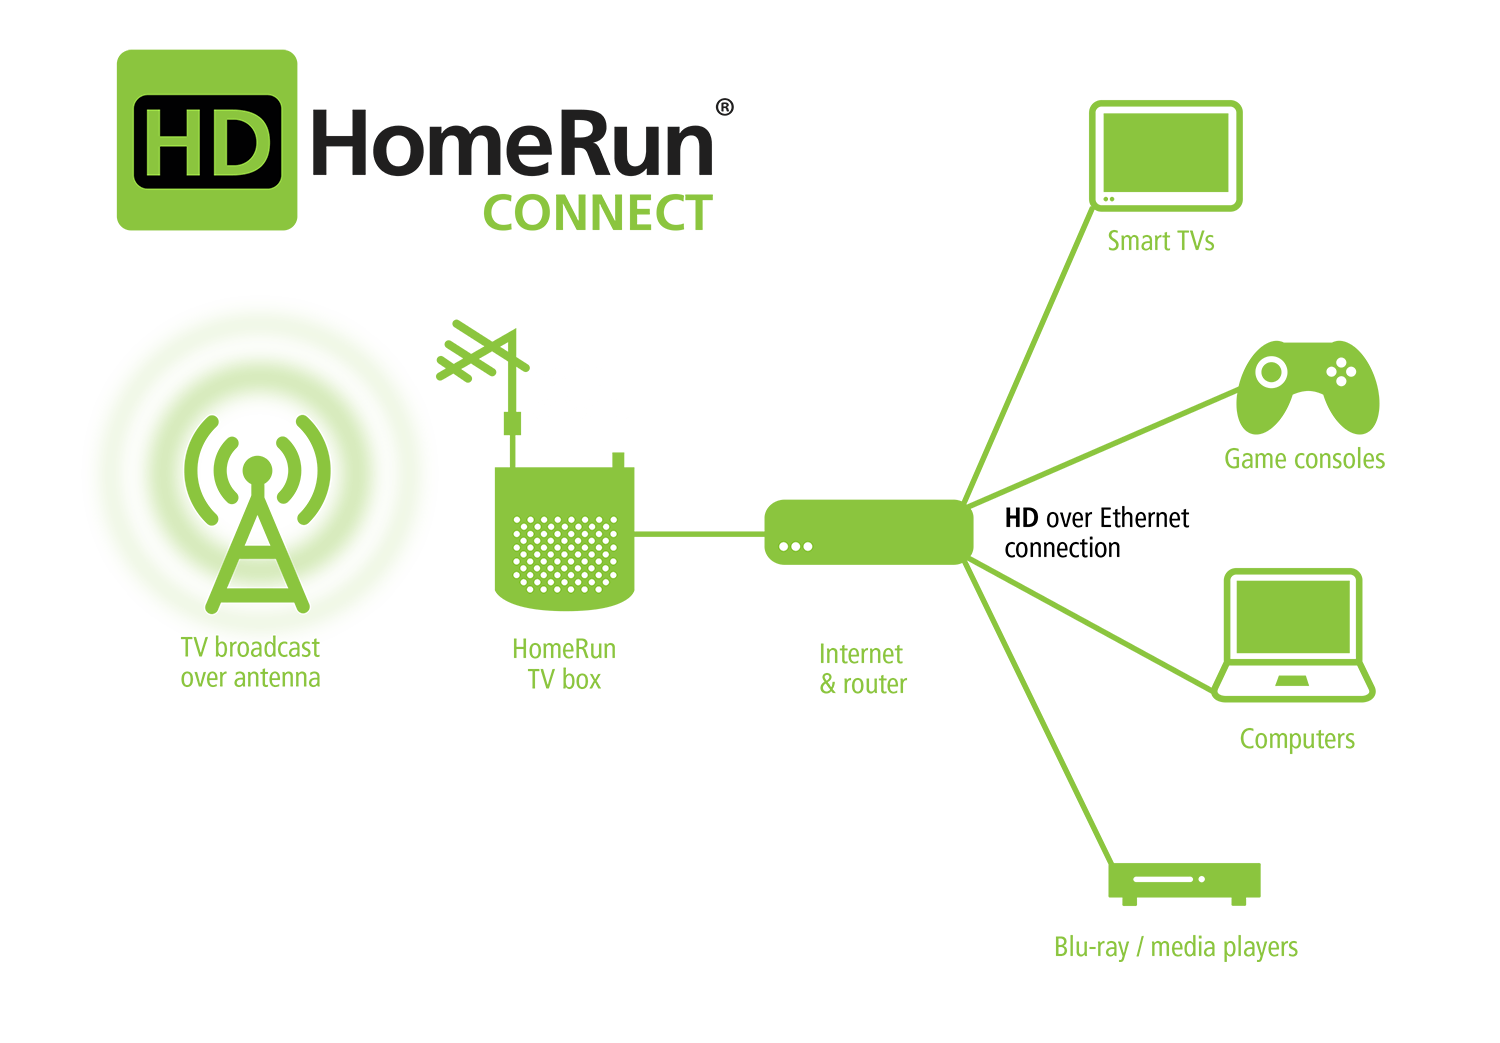 hdhomerun connect diagram the cable guy diagram connection tech living room  [ 1500 x 1043 Pixel ]